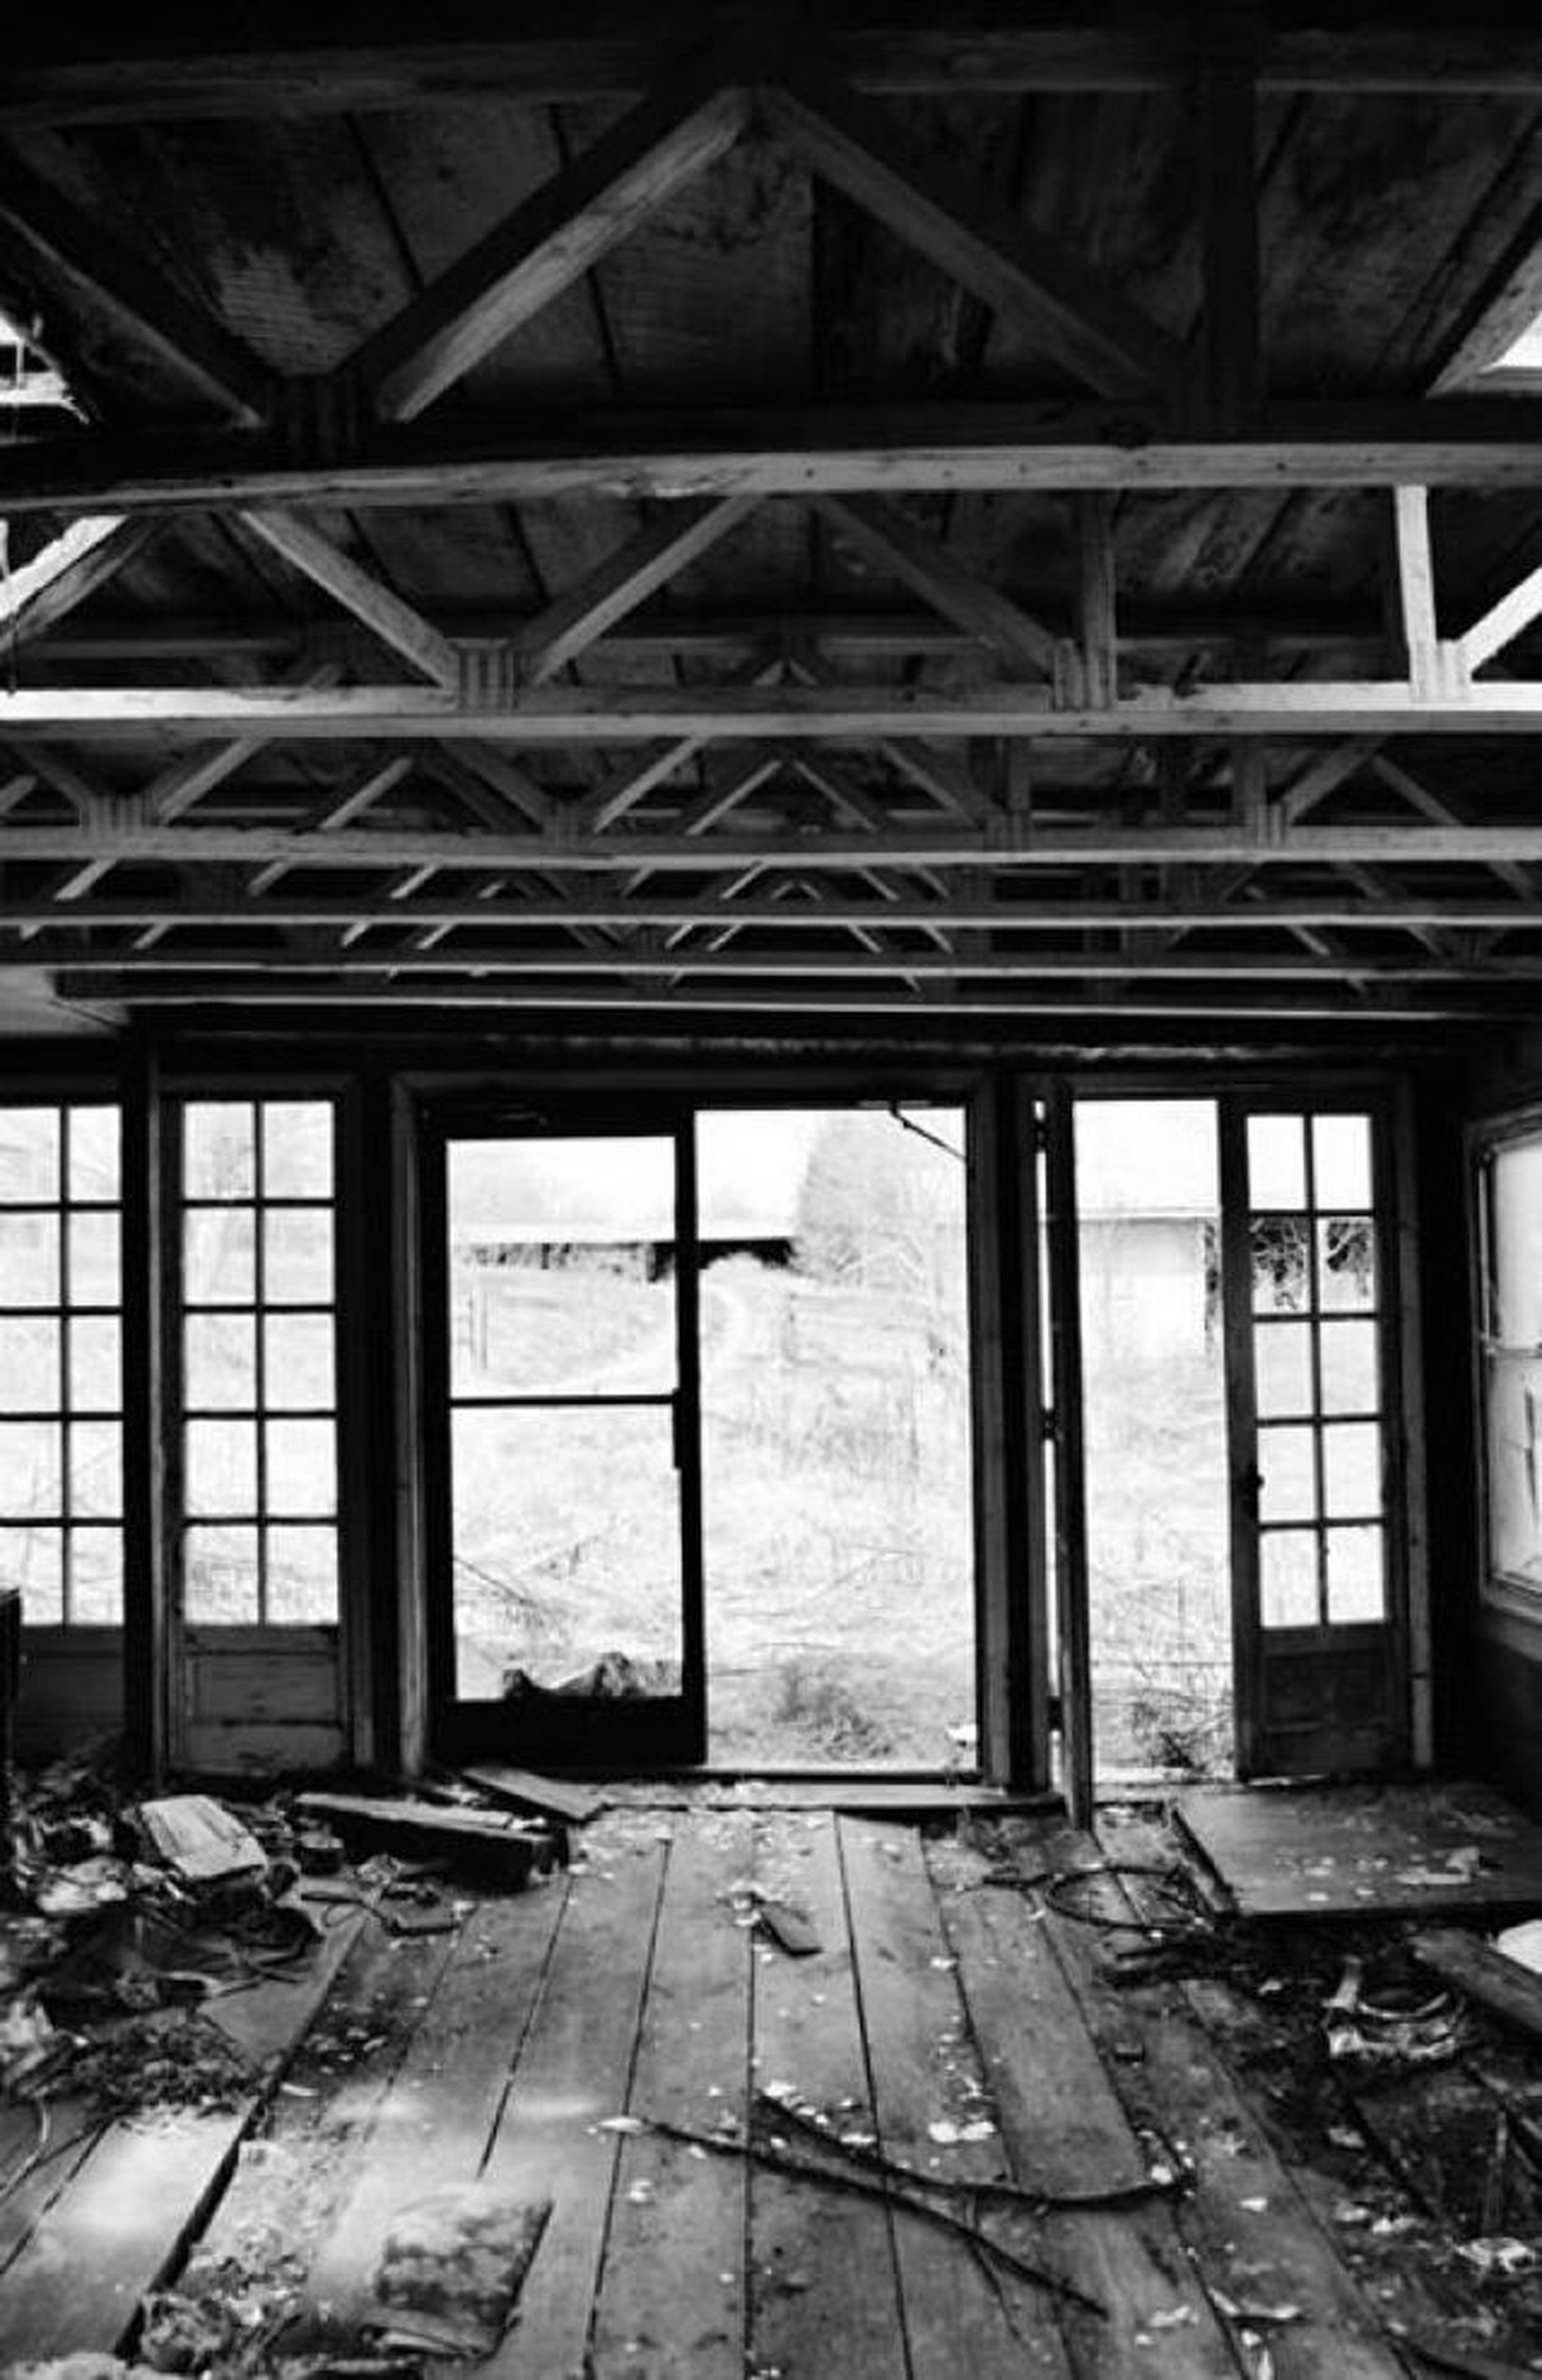 indoors, abandoned, window, built structure, architecture, damaged, obsolete, old, run-down, deterioration, wood - material, interior, ceiling, day, weathered, glass - material, broken, no people, bad condition, ruined